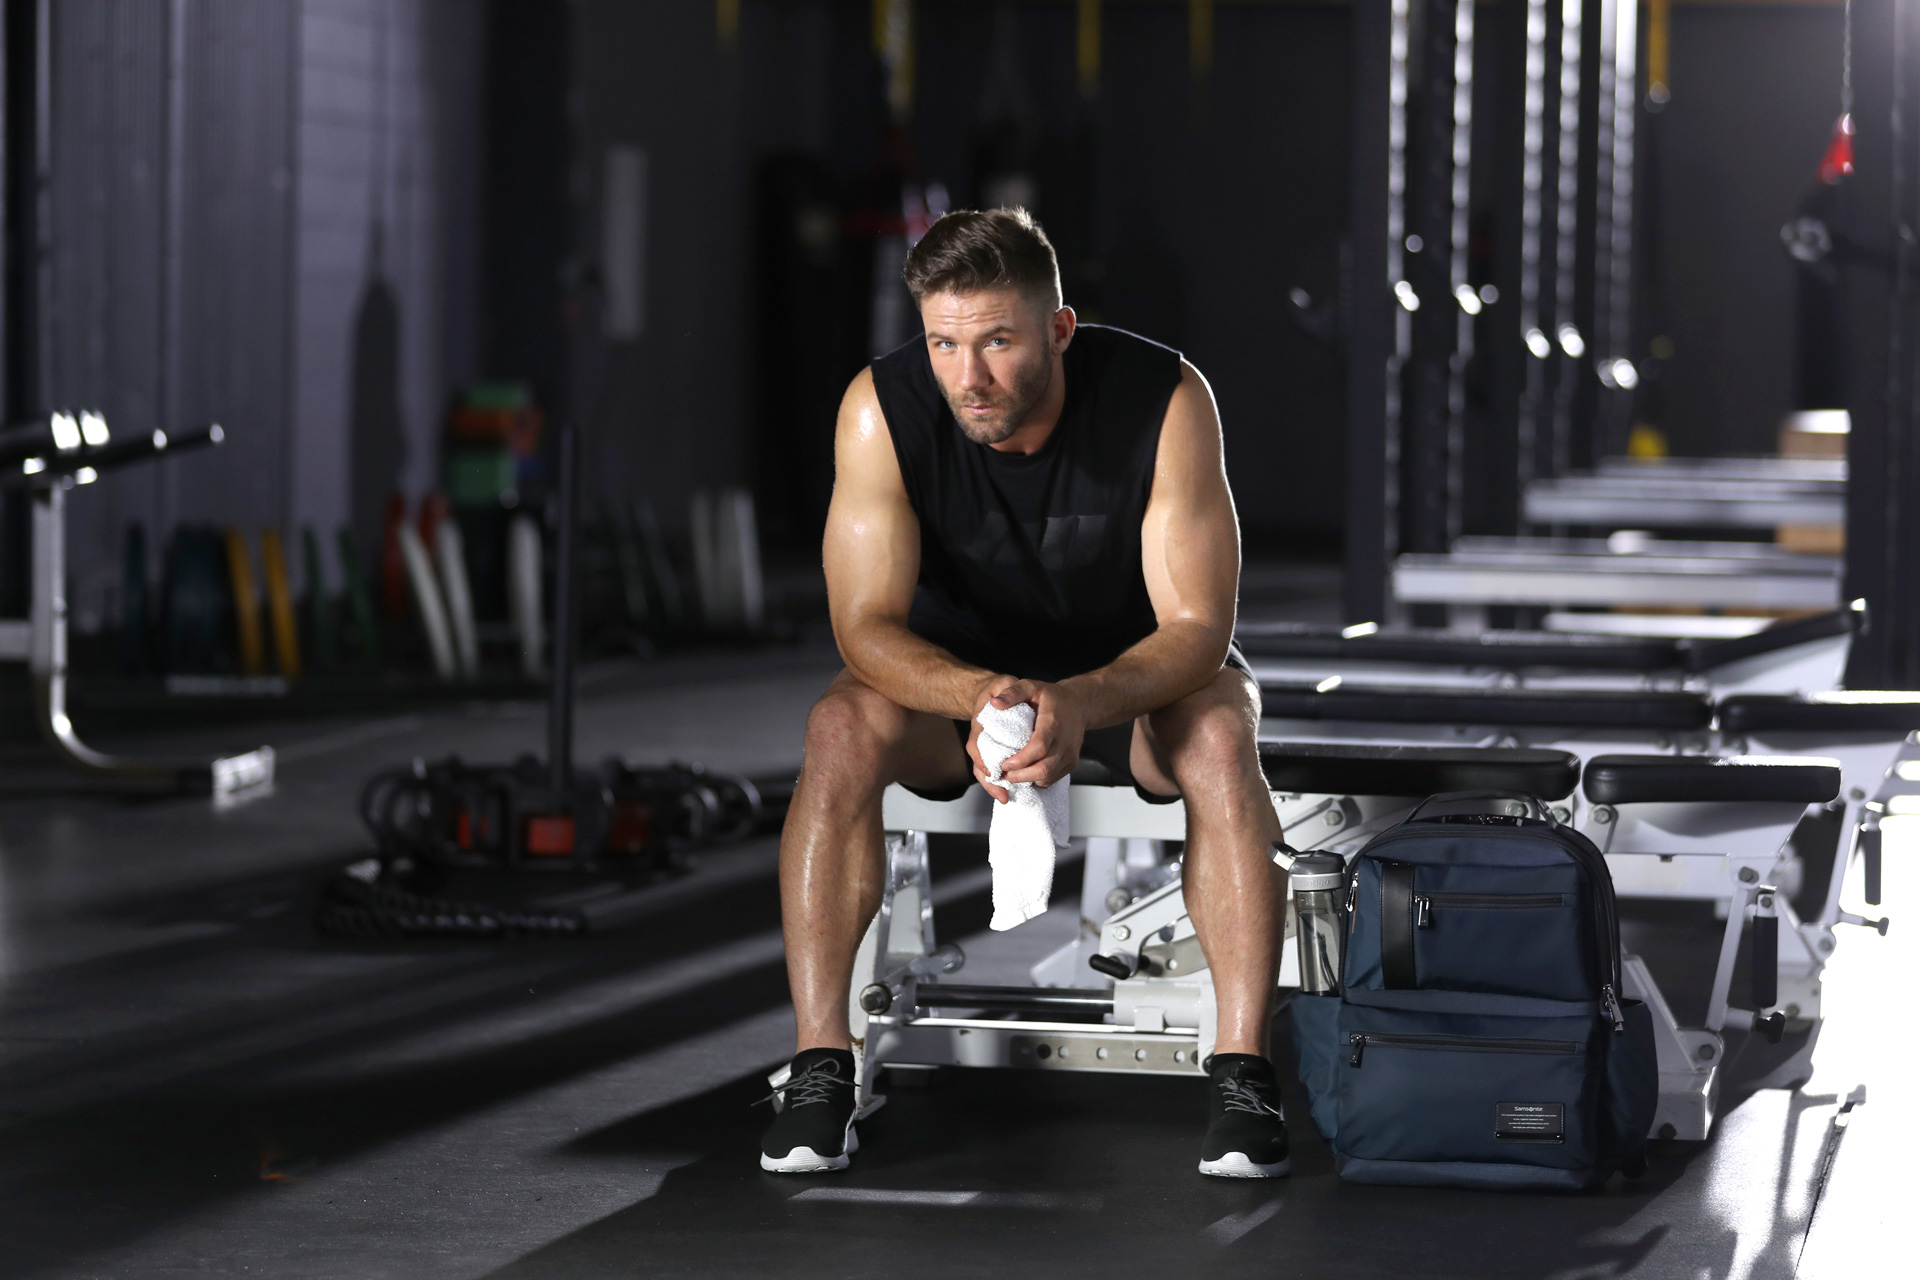 New England Patriots wide receiver Julian Edelman is shown in a weight room.